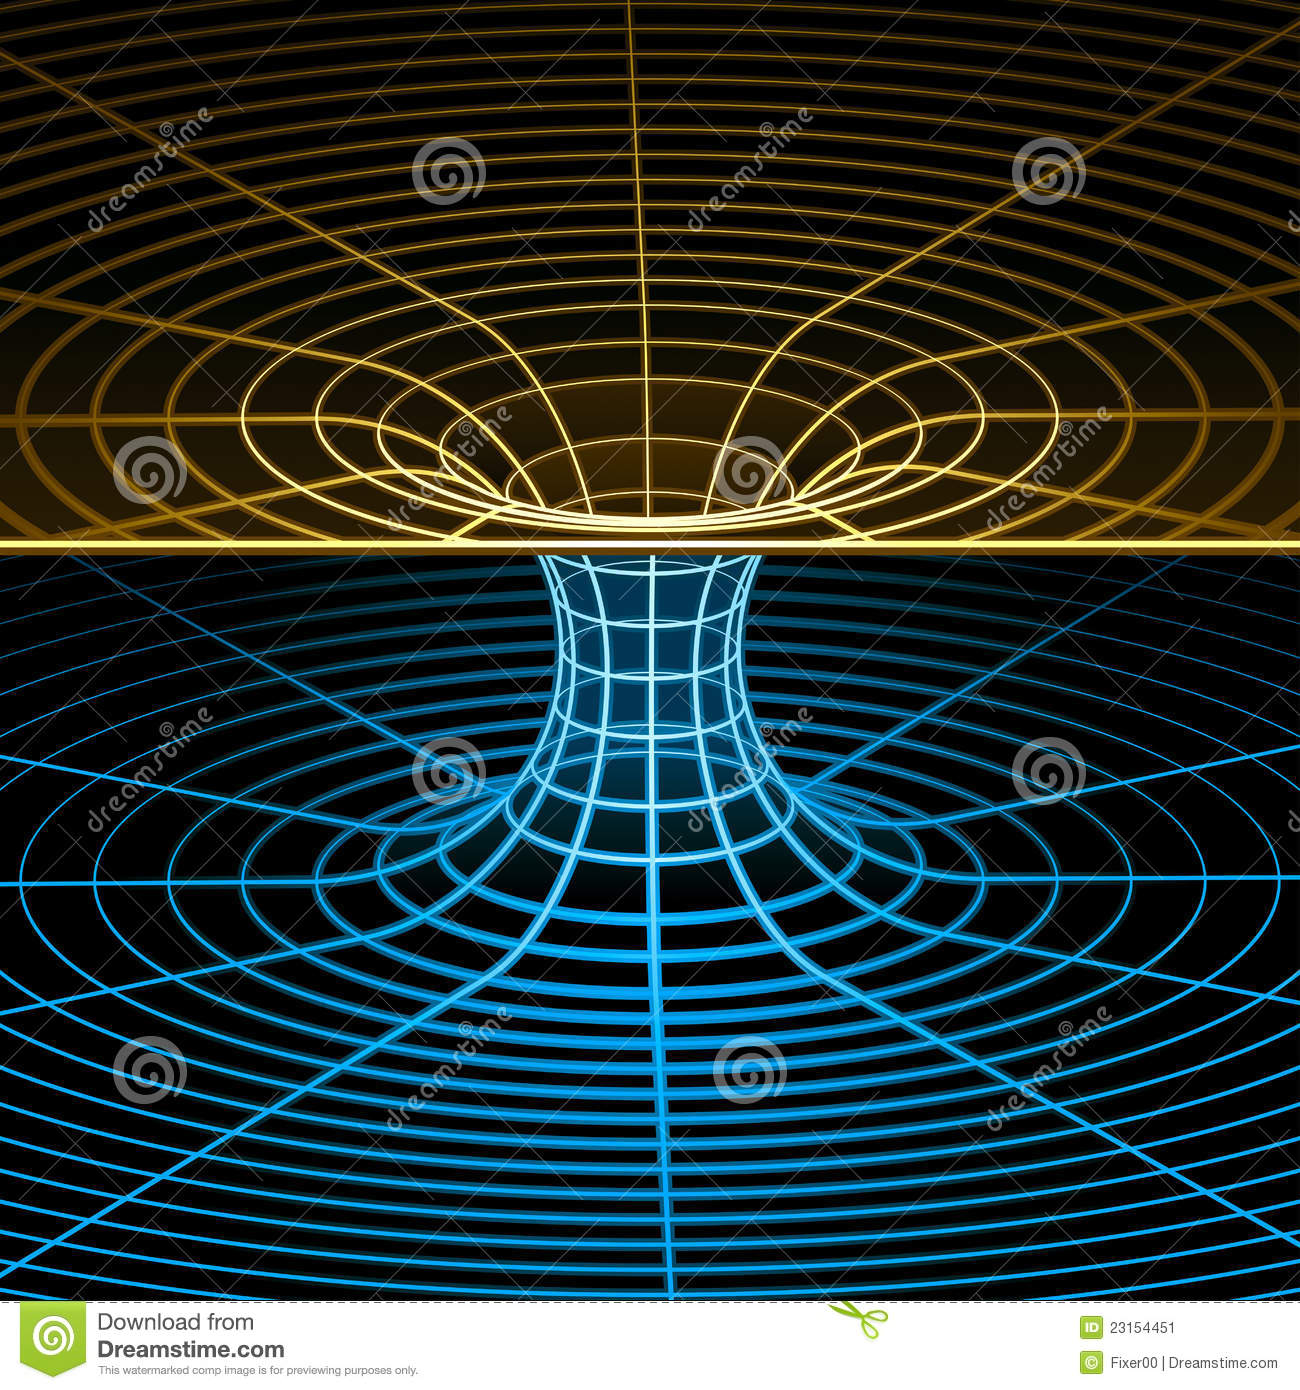 Wireframe symbol (wormhole)